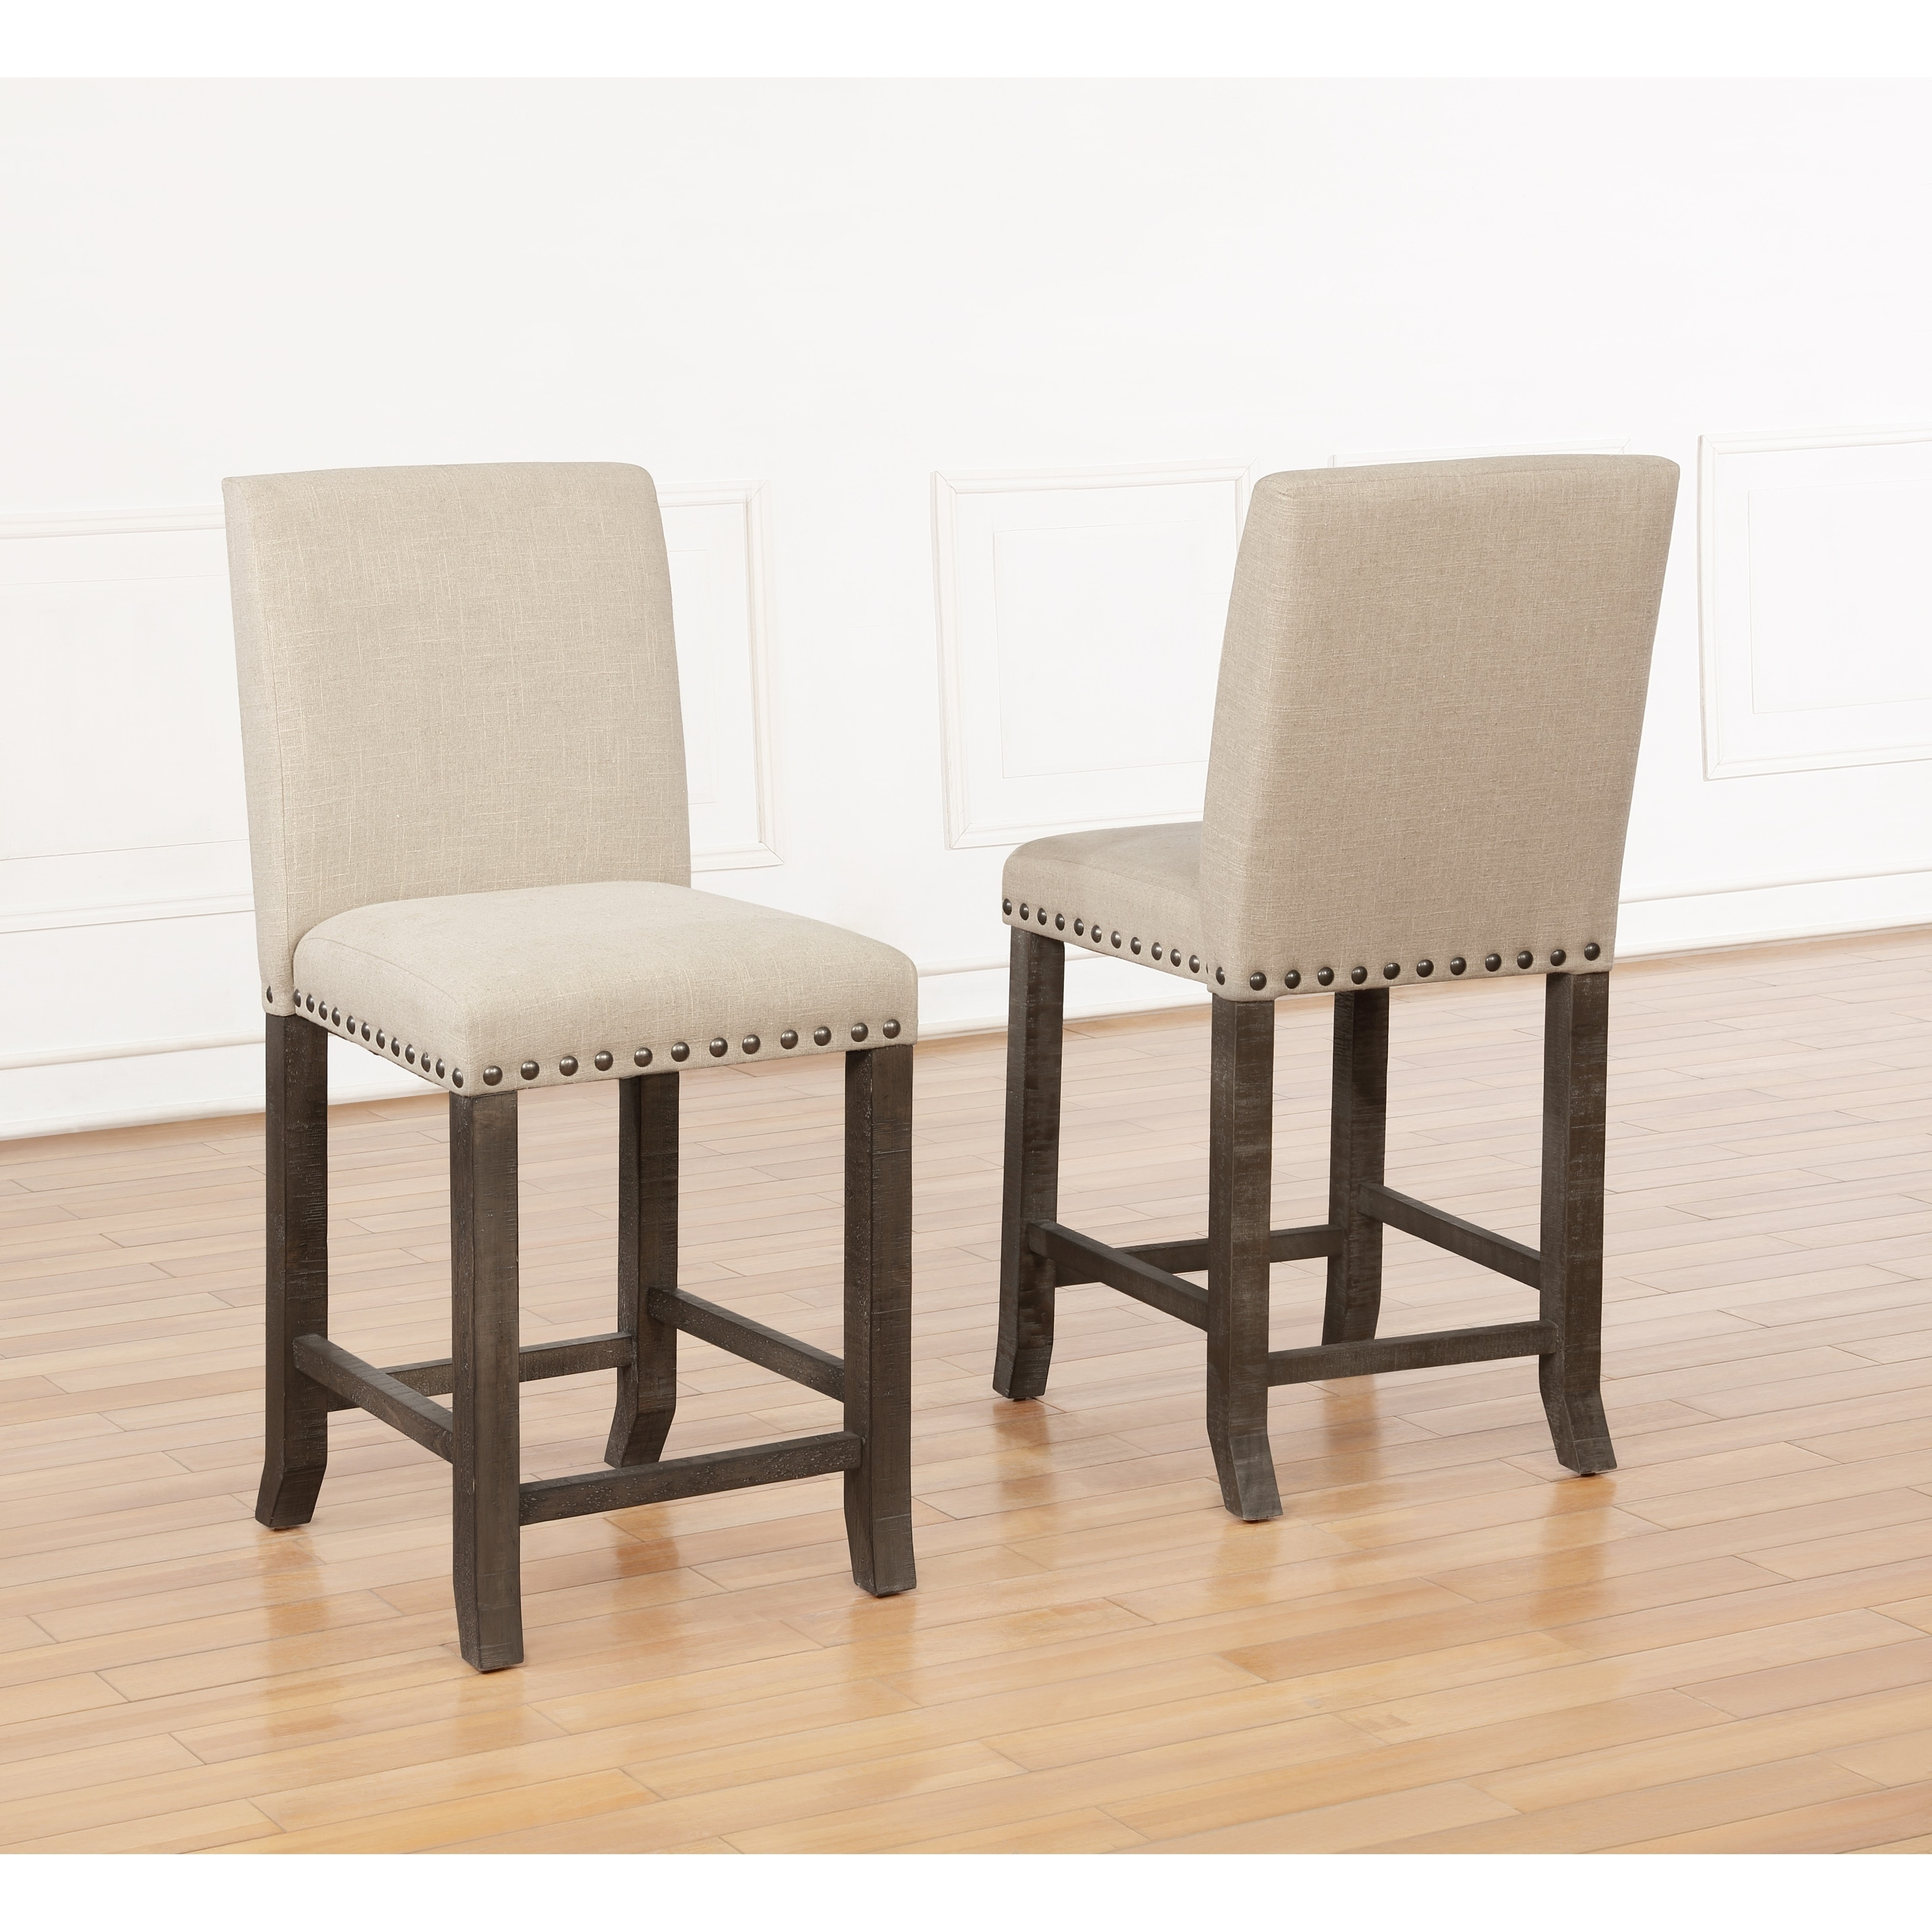 Best Quality Furniture Upholstered Counter Height Dining Chair Set Of 2 On Sale Overstock 25612799